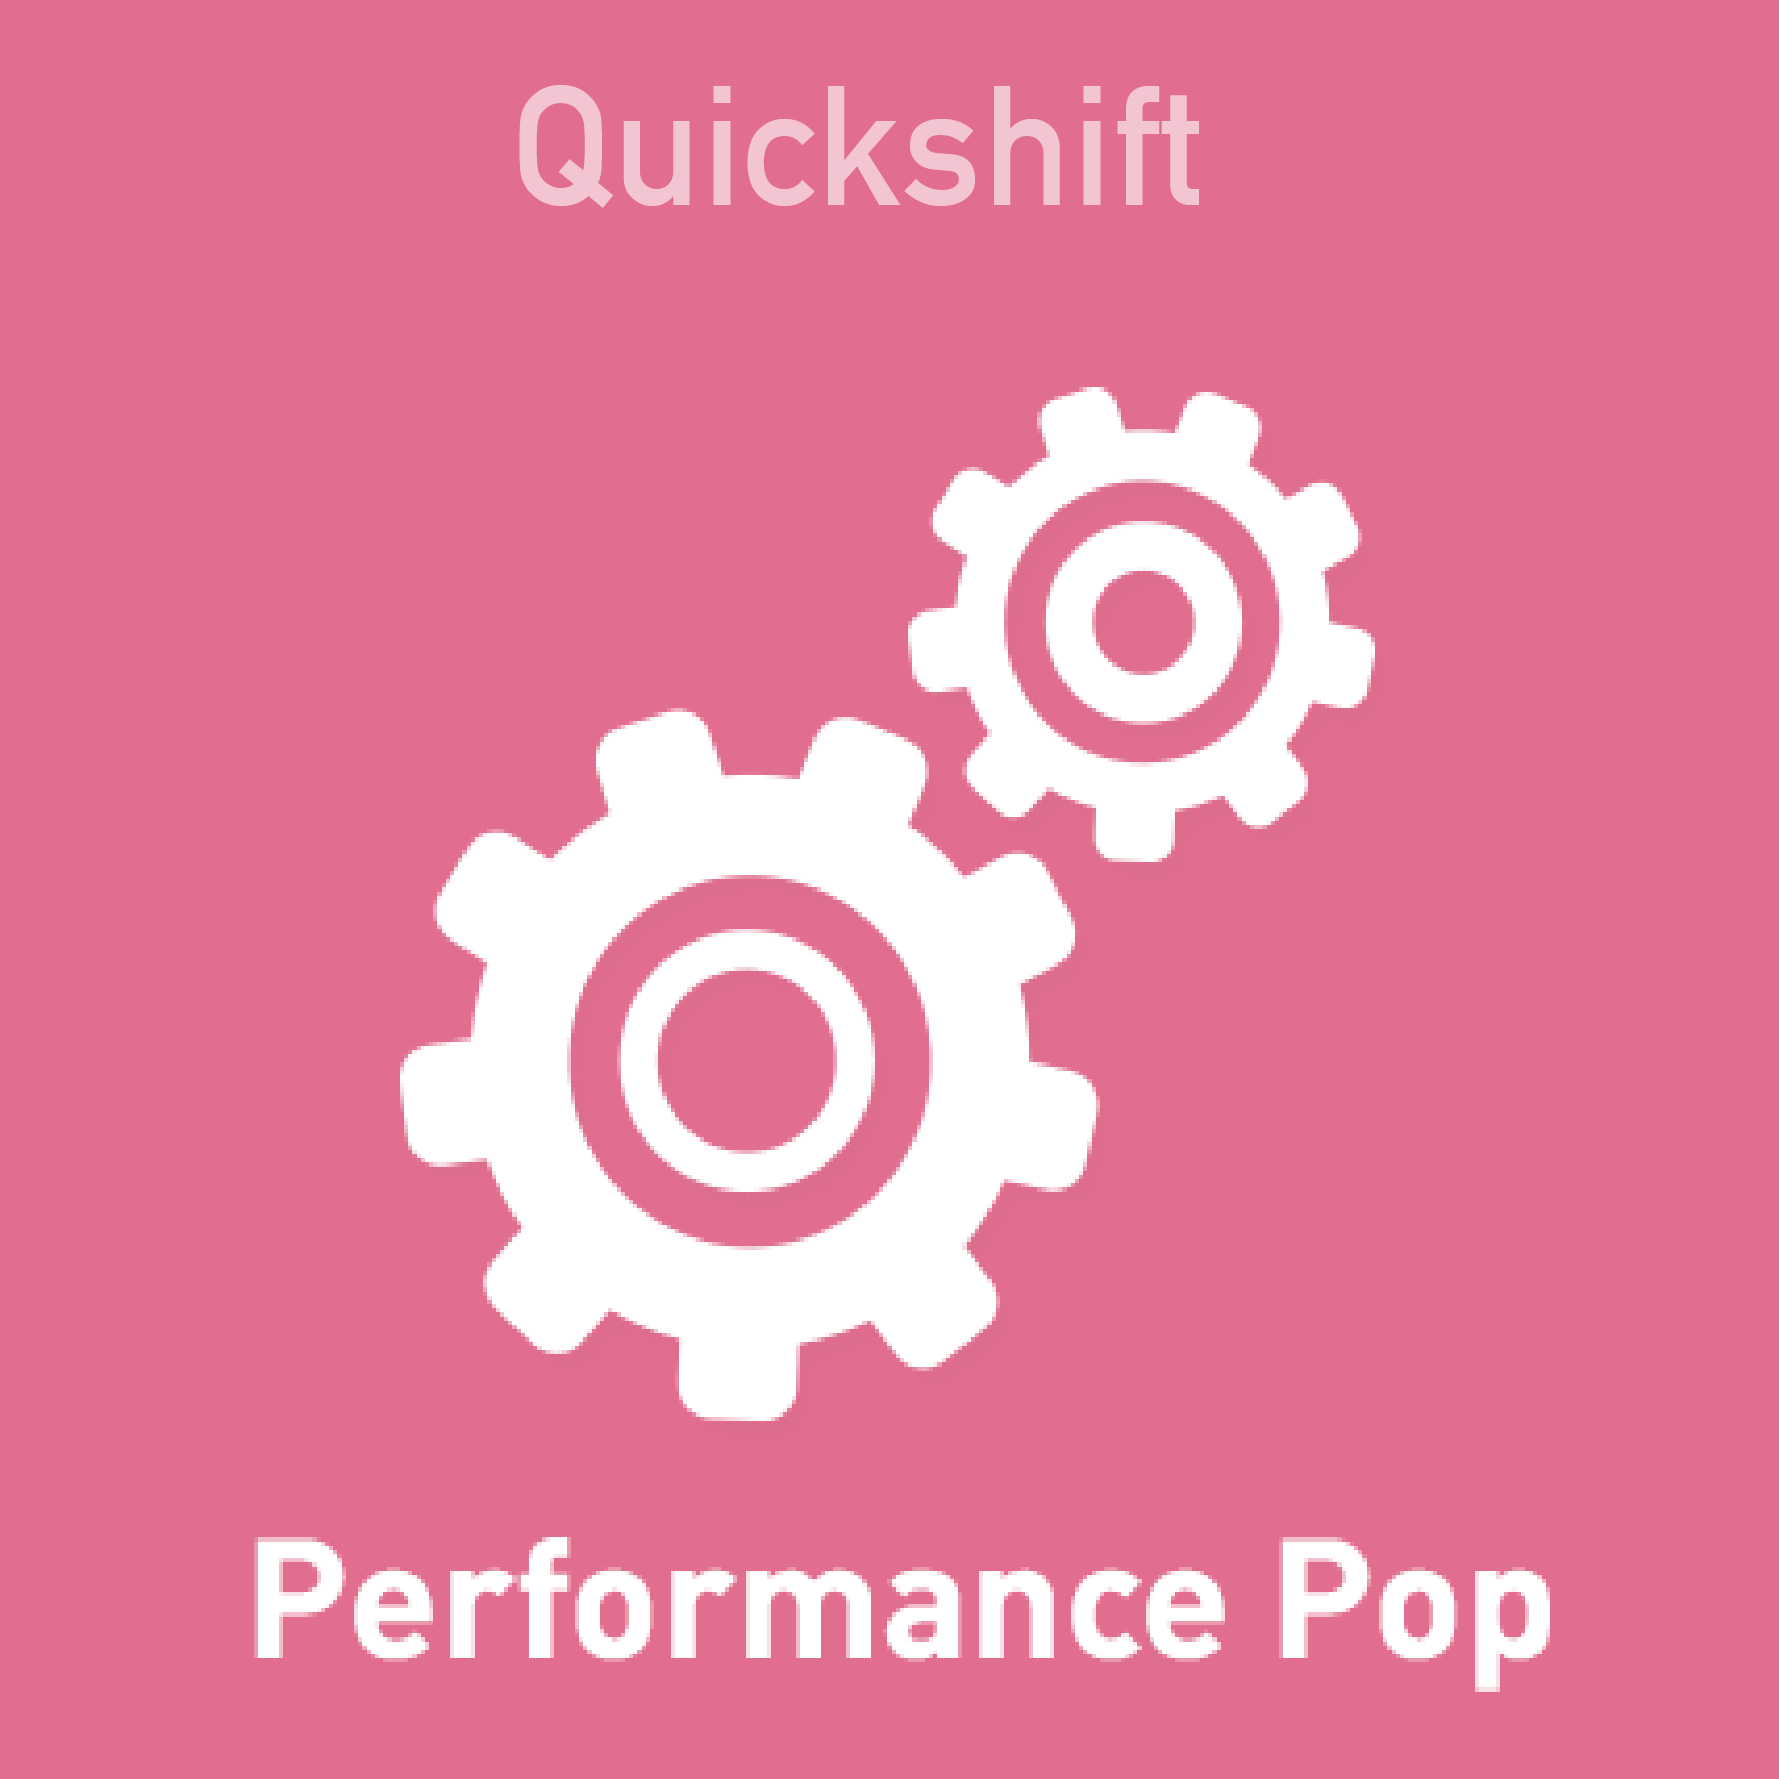 Quickshift - Performance Pop